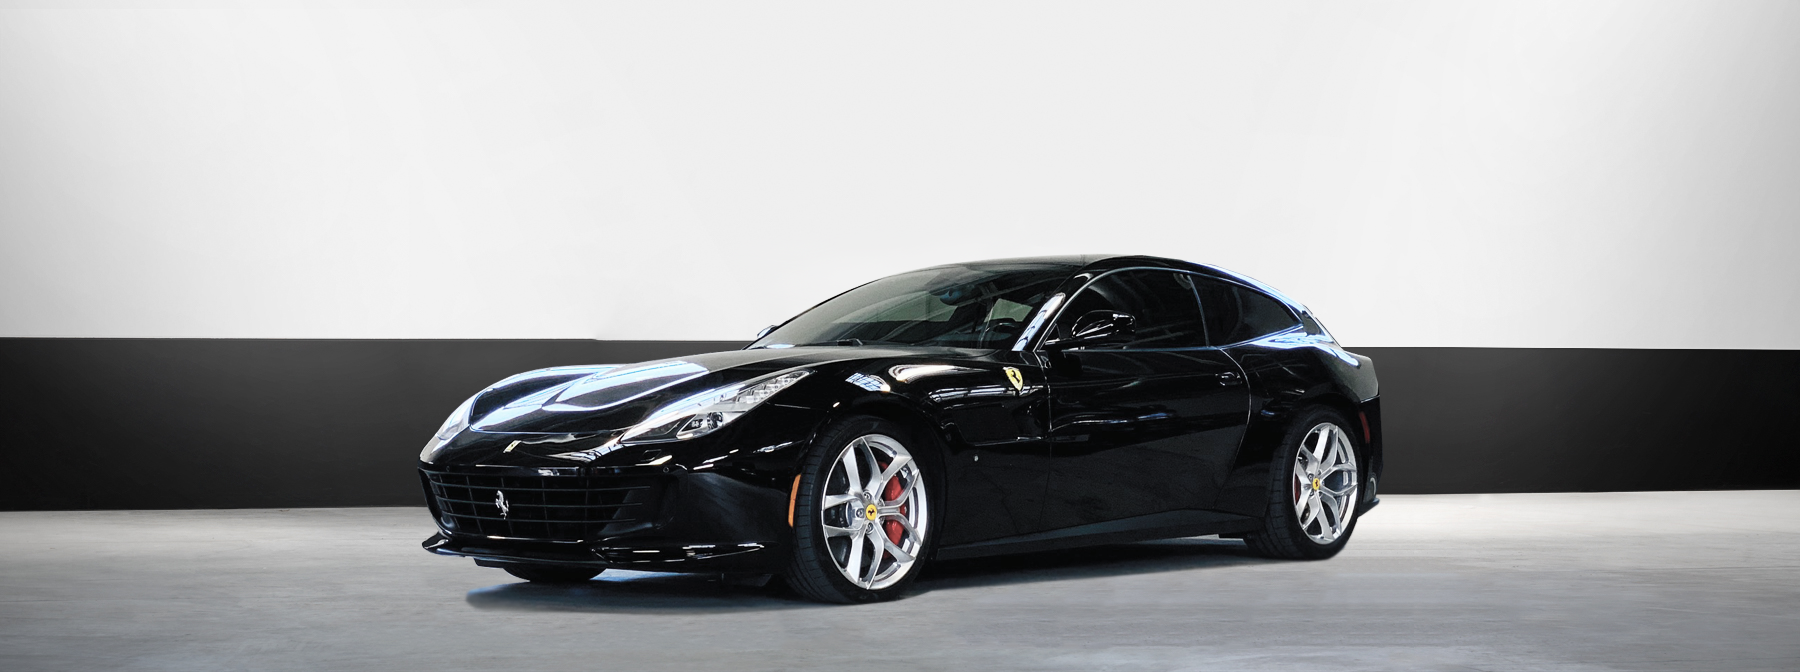 38 Gallery of 2019 Ferrari Gtc4Lusso Price and Review by 2019 Ferrari Gtc4Lusso